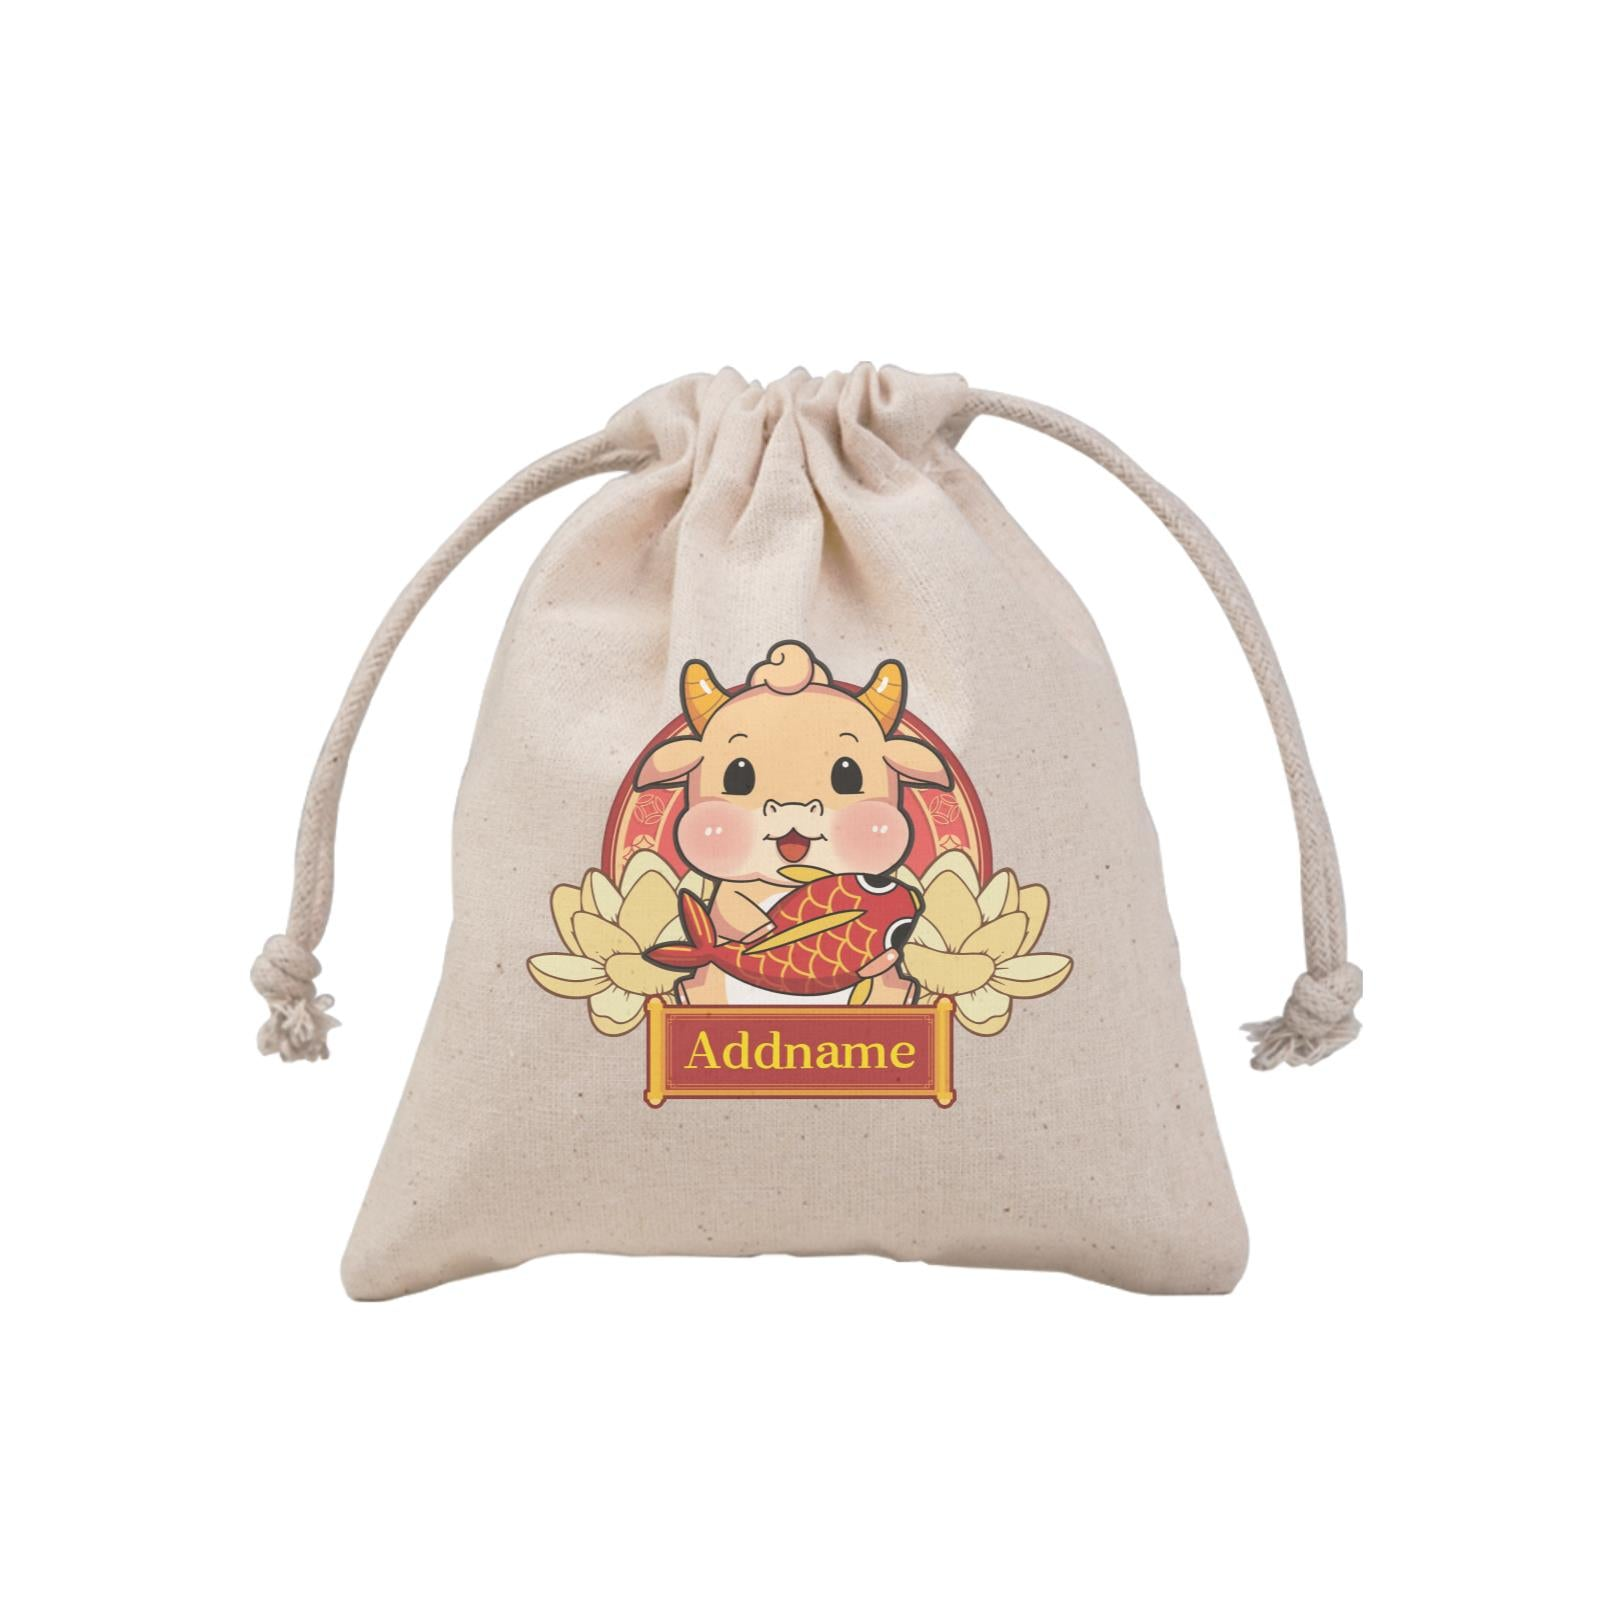 [CNY 2021] Gold Lotus Series Golden Cow with Koi Fish MP Mini Pouch